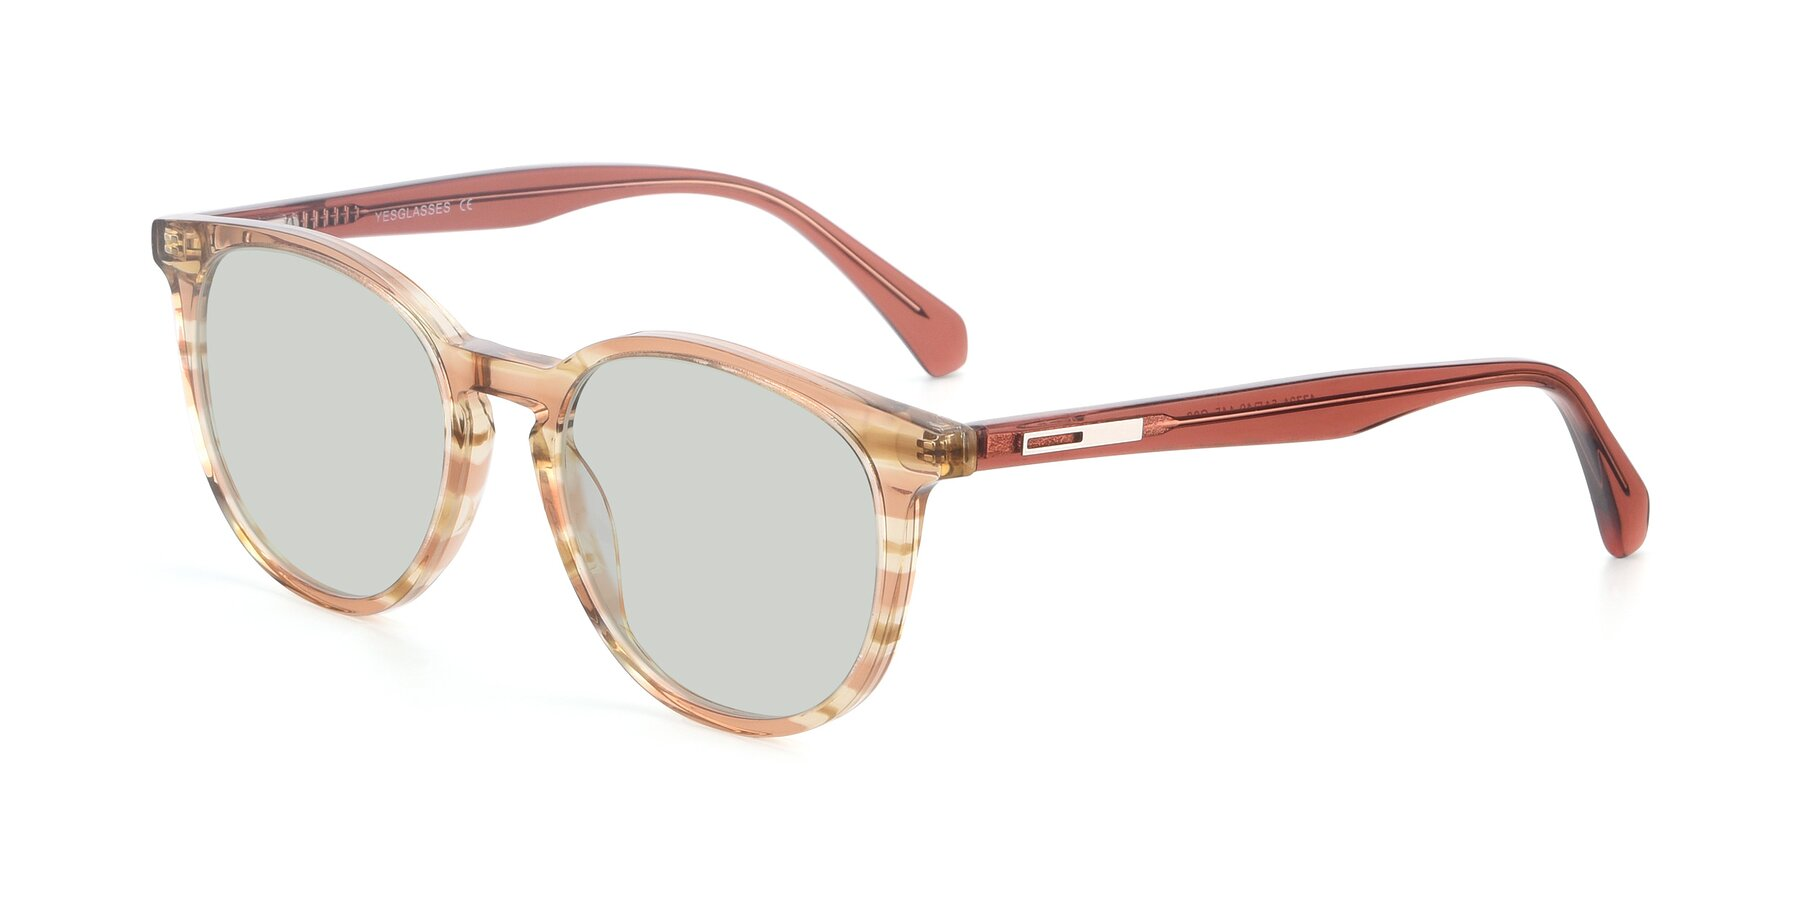 Angle of 17721 in Stripe Caramel with Light Green Tinted Lenses